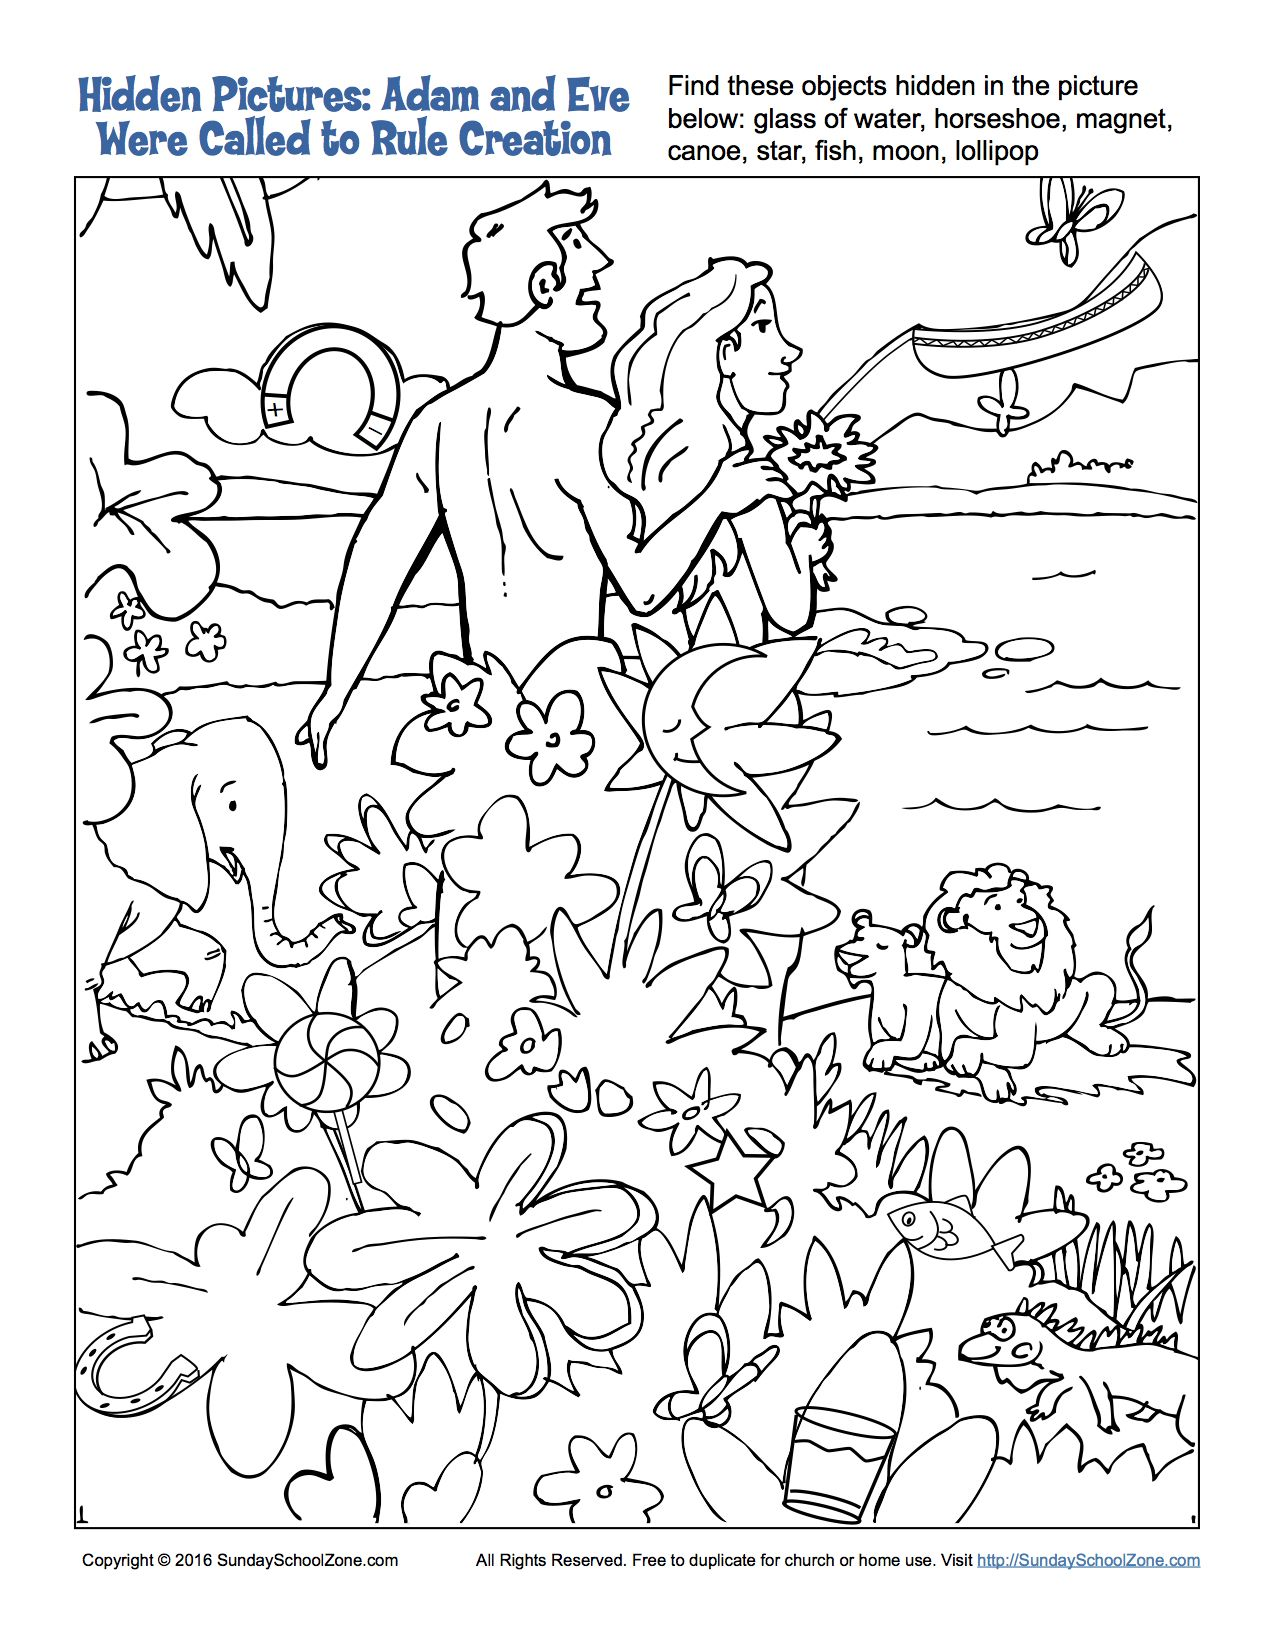 adam and eve were called to rule hidden pictures adam and eve